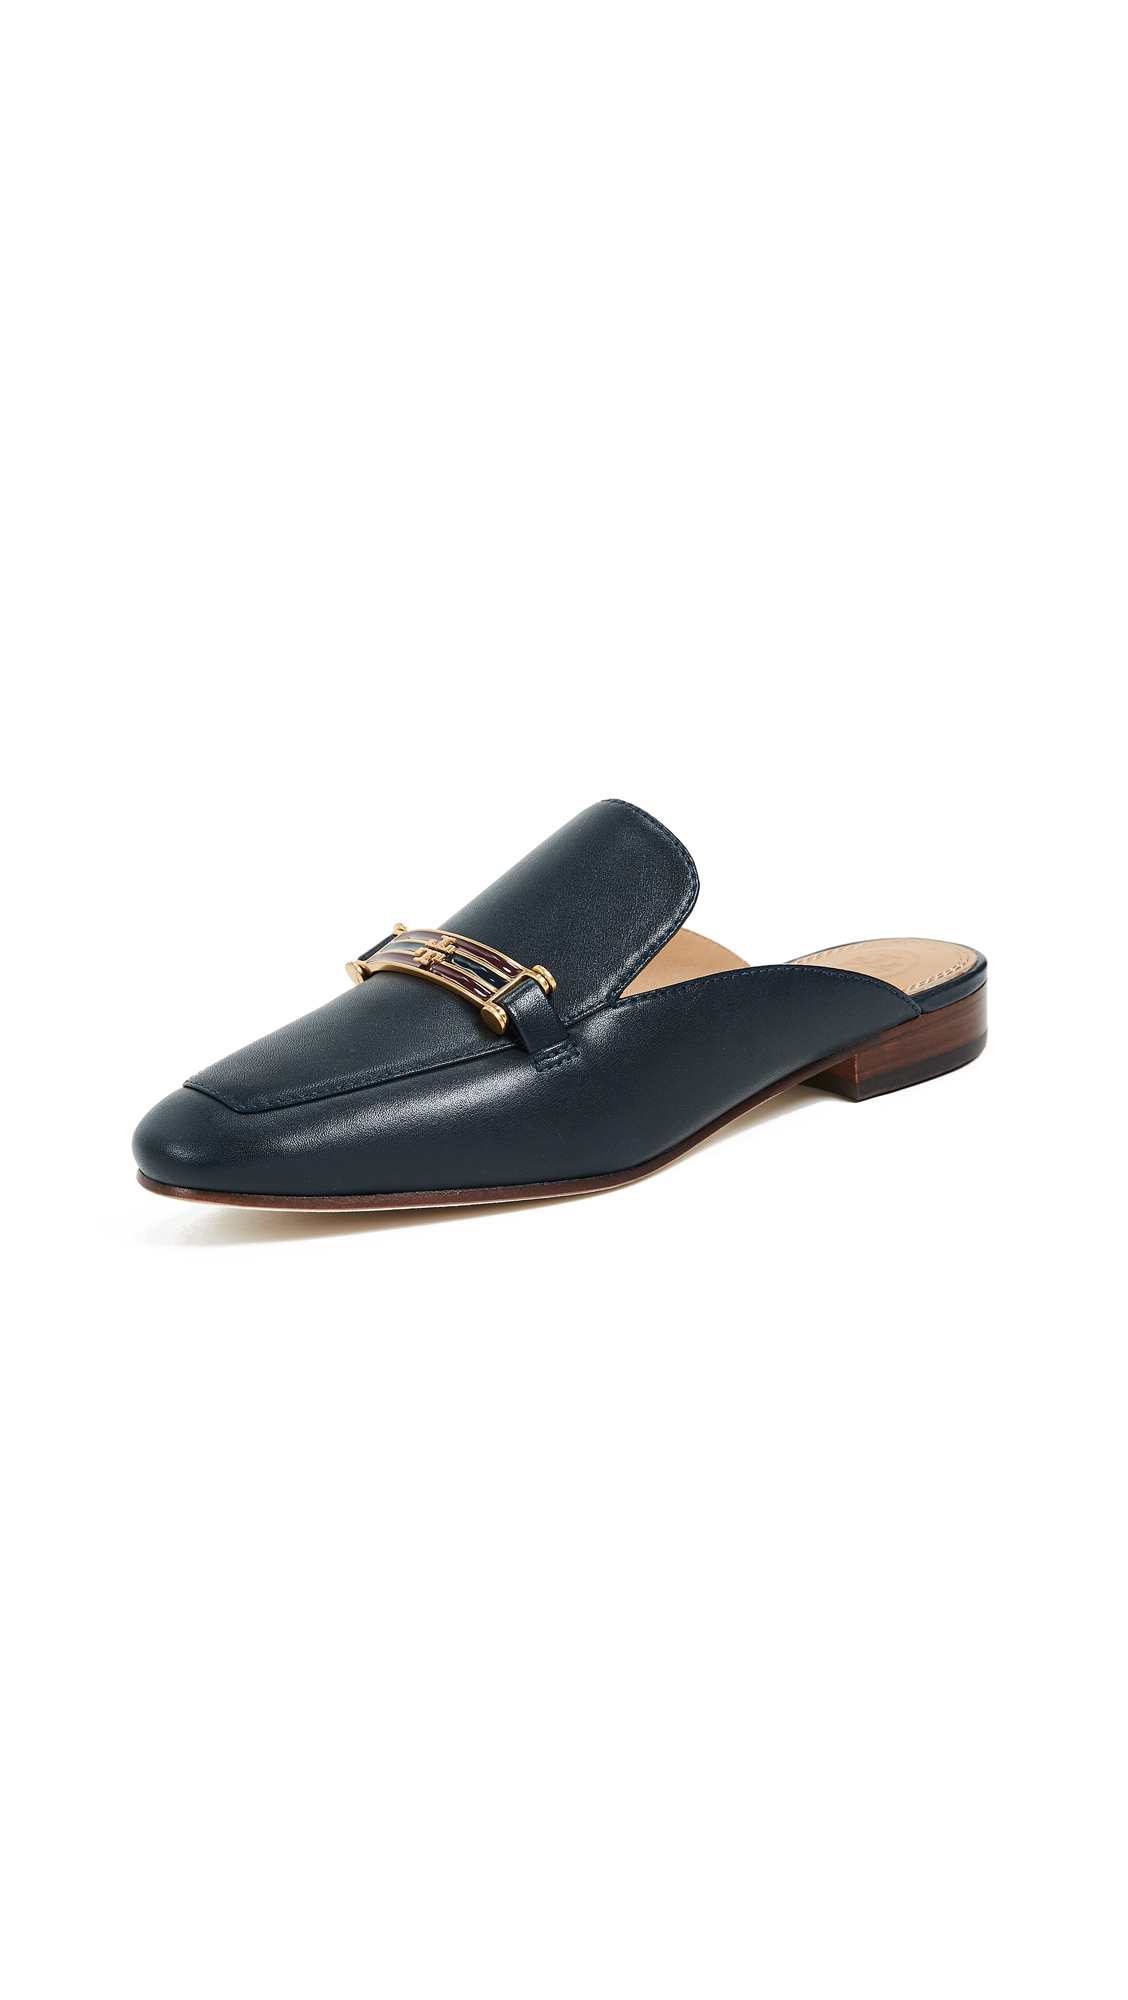 Tory Burch Amelia Backless Loafers - Perfect Navy